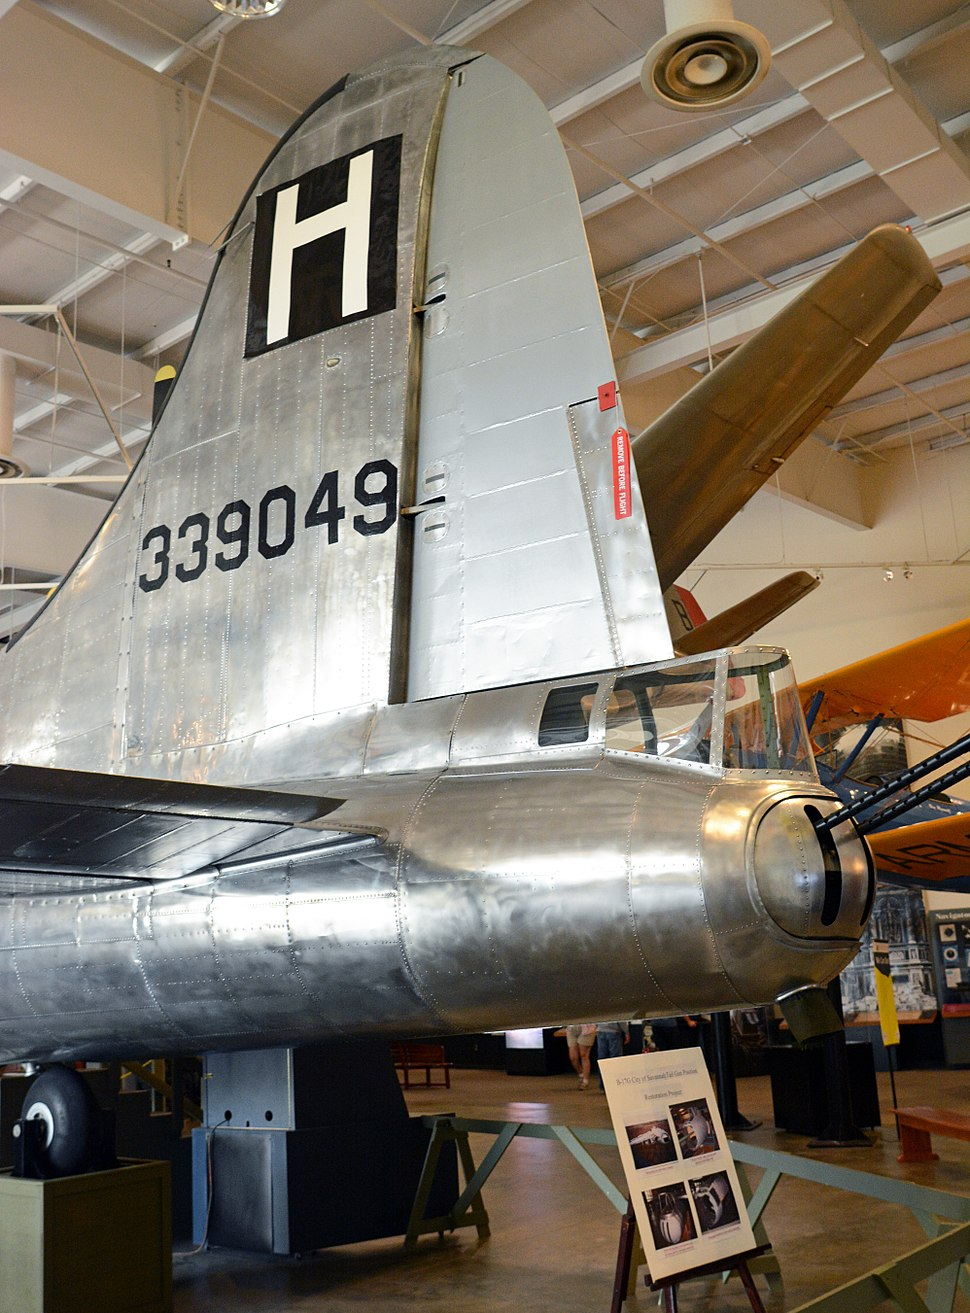 B-17 tail at Mighty Eighth Air Force Museum, Pooler, GA, US